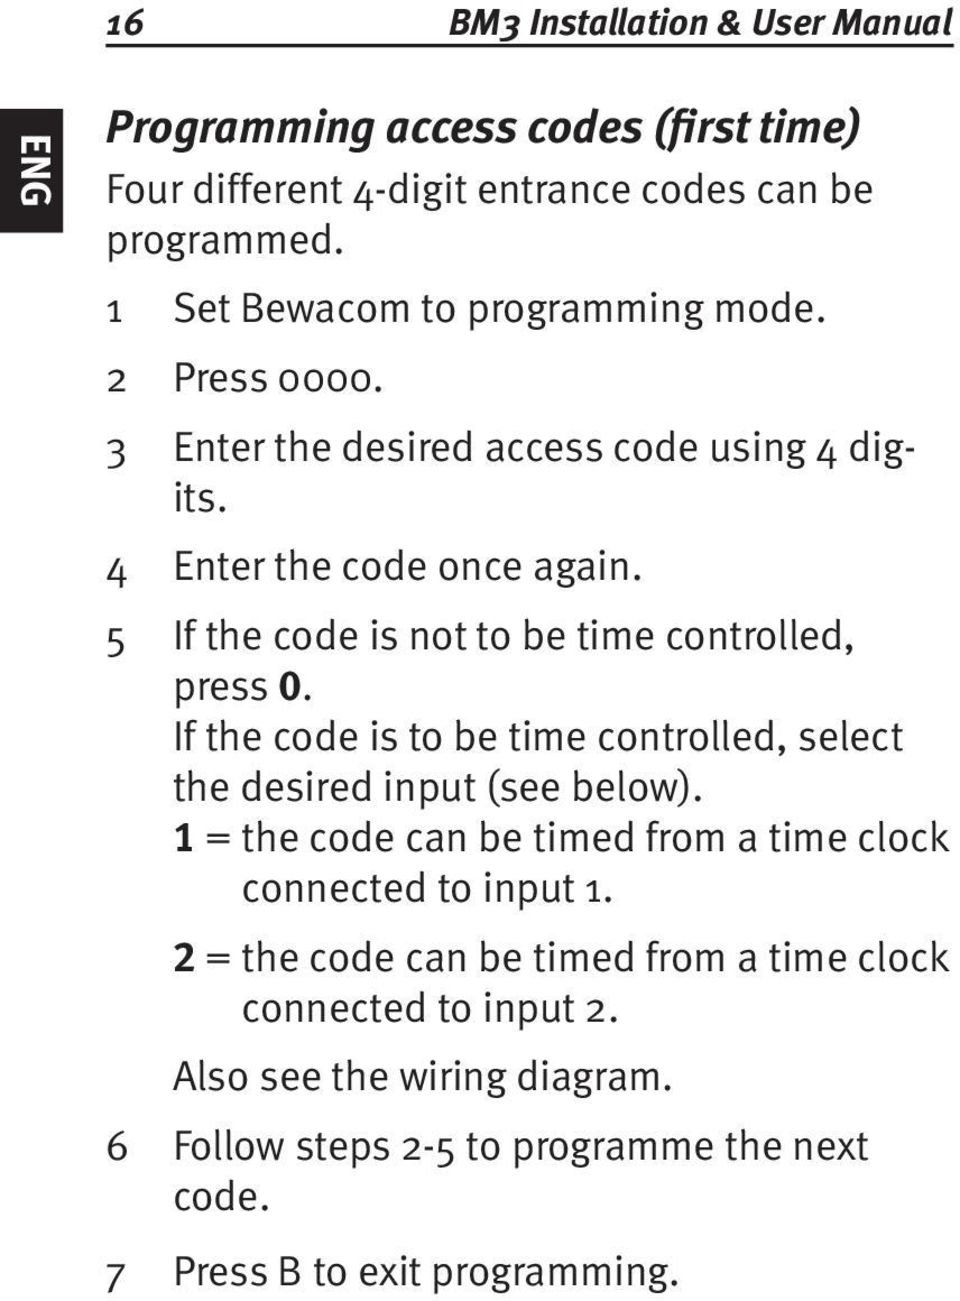 If the code is not to be time controlled, press 0. If the code is to be time controlled, select the desired input (see below).